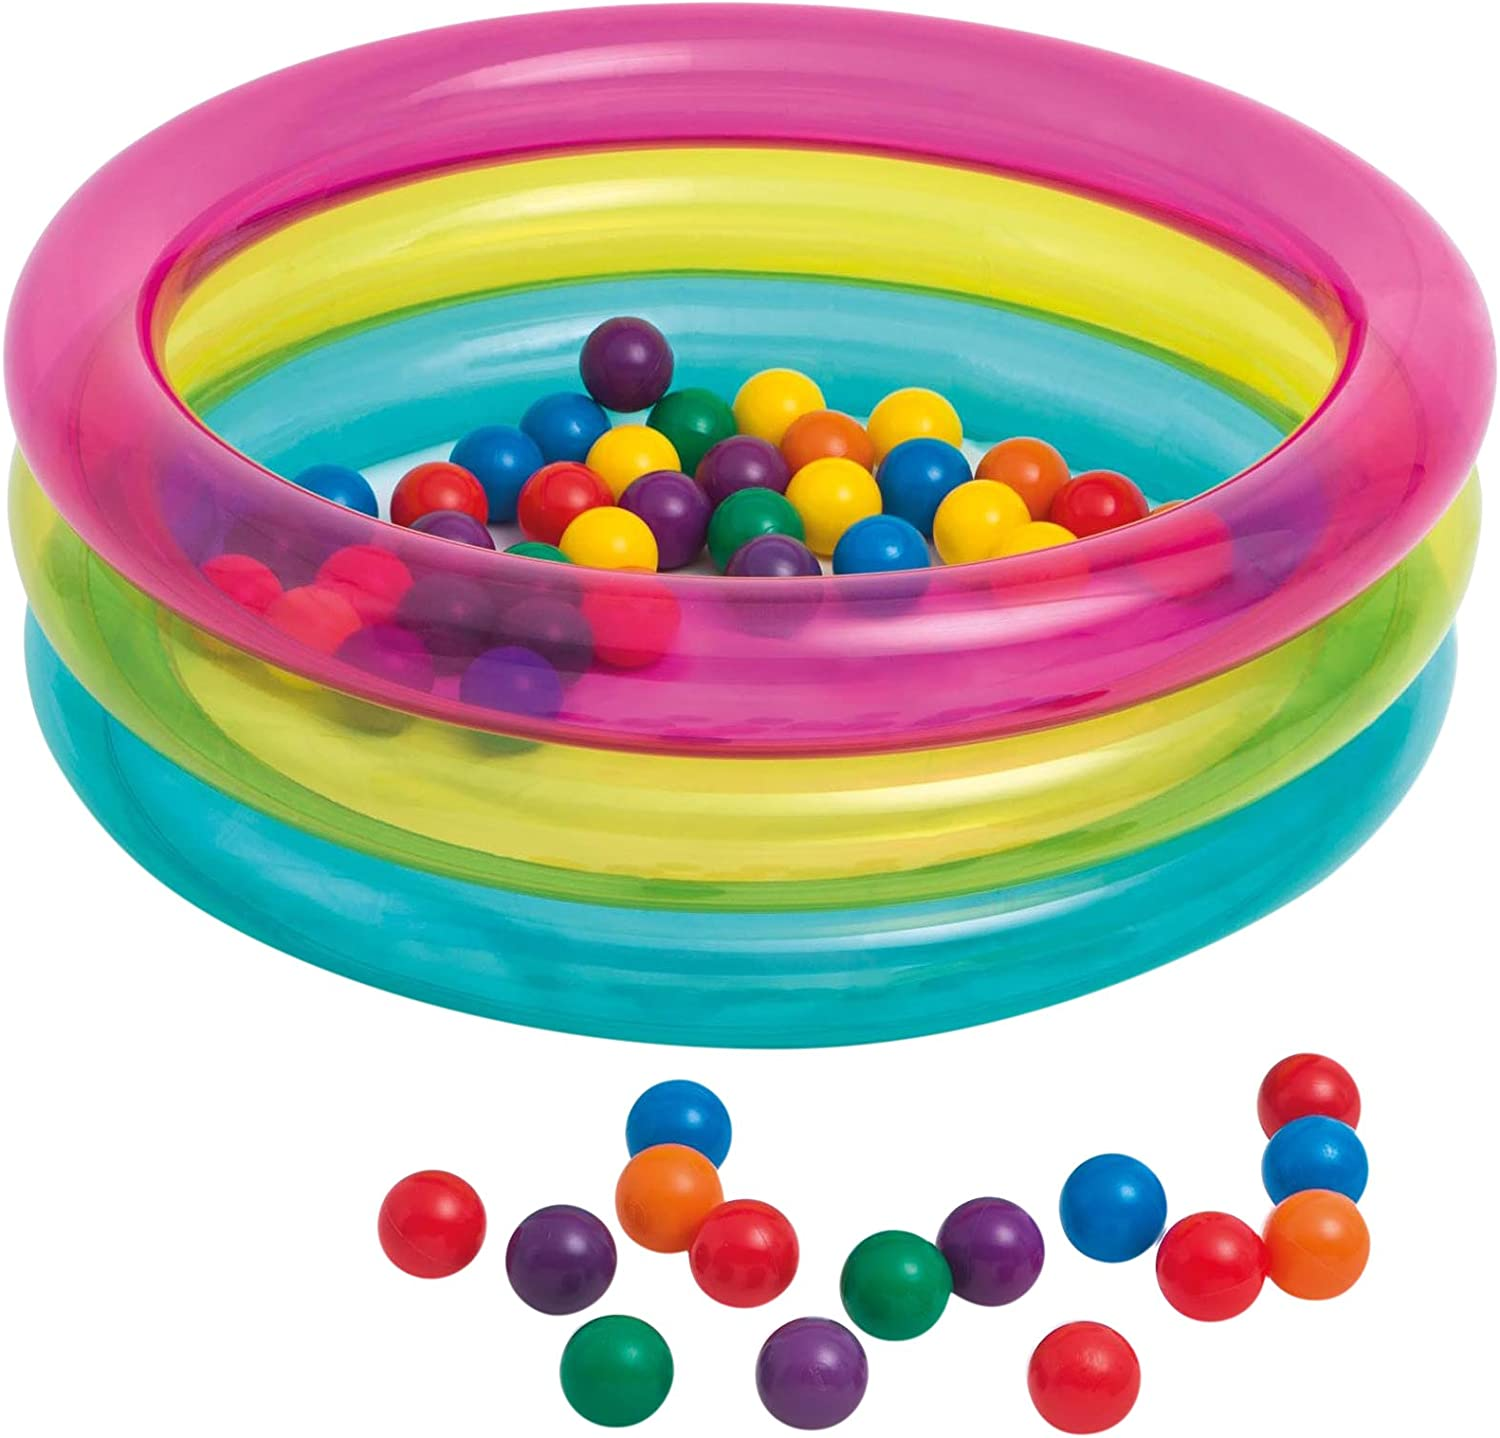 Intex 48674NP - Piscina de bolas hinchable con 50 bolas de colores ...